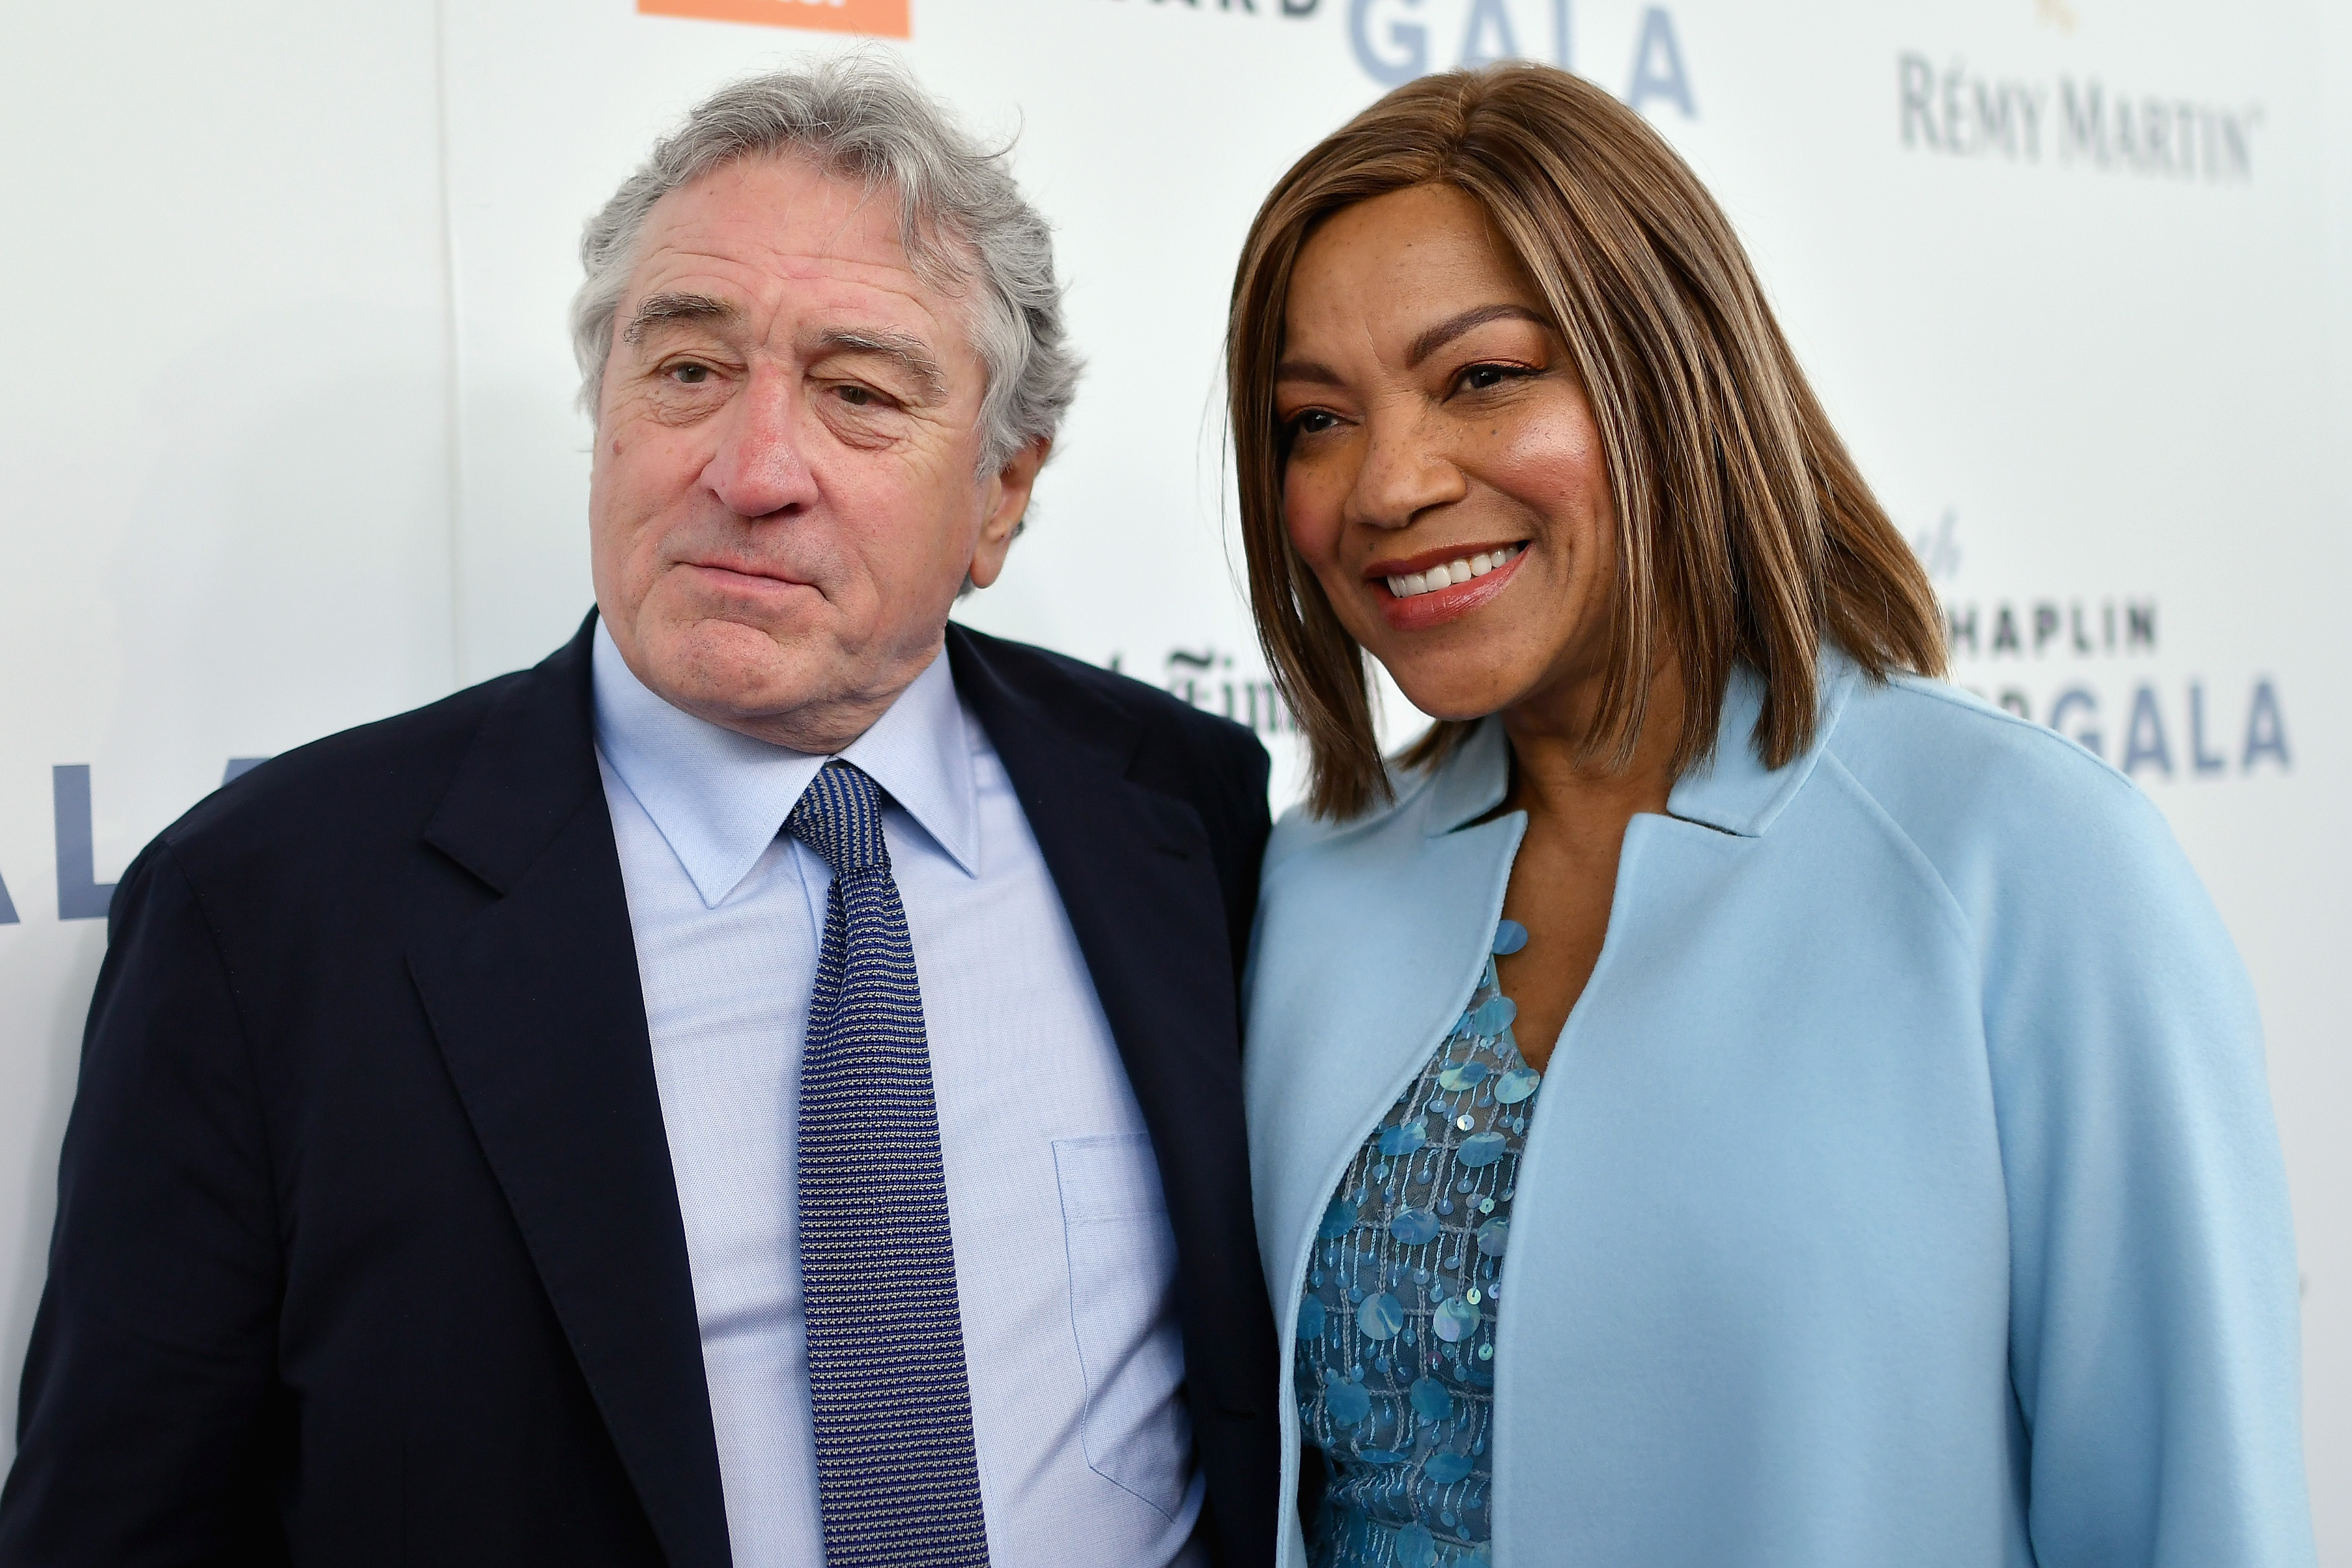 Grace Hightower (L) and actor Robert De Niro attend the 44th Chaplin Award Gala at David H. Koch Theater at Lincoln Center on May 8, 2017 in New York City. (Photo by Mike Coppola/Getty Images)